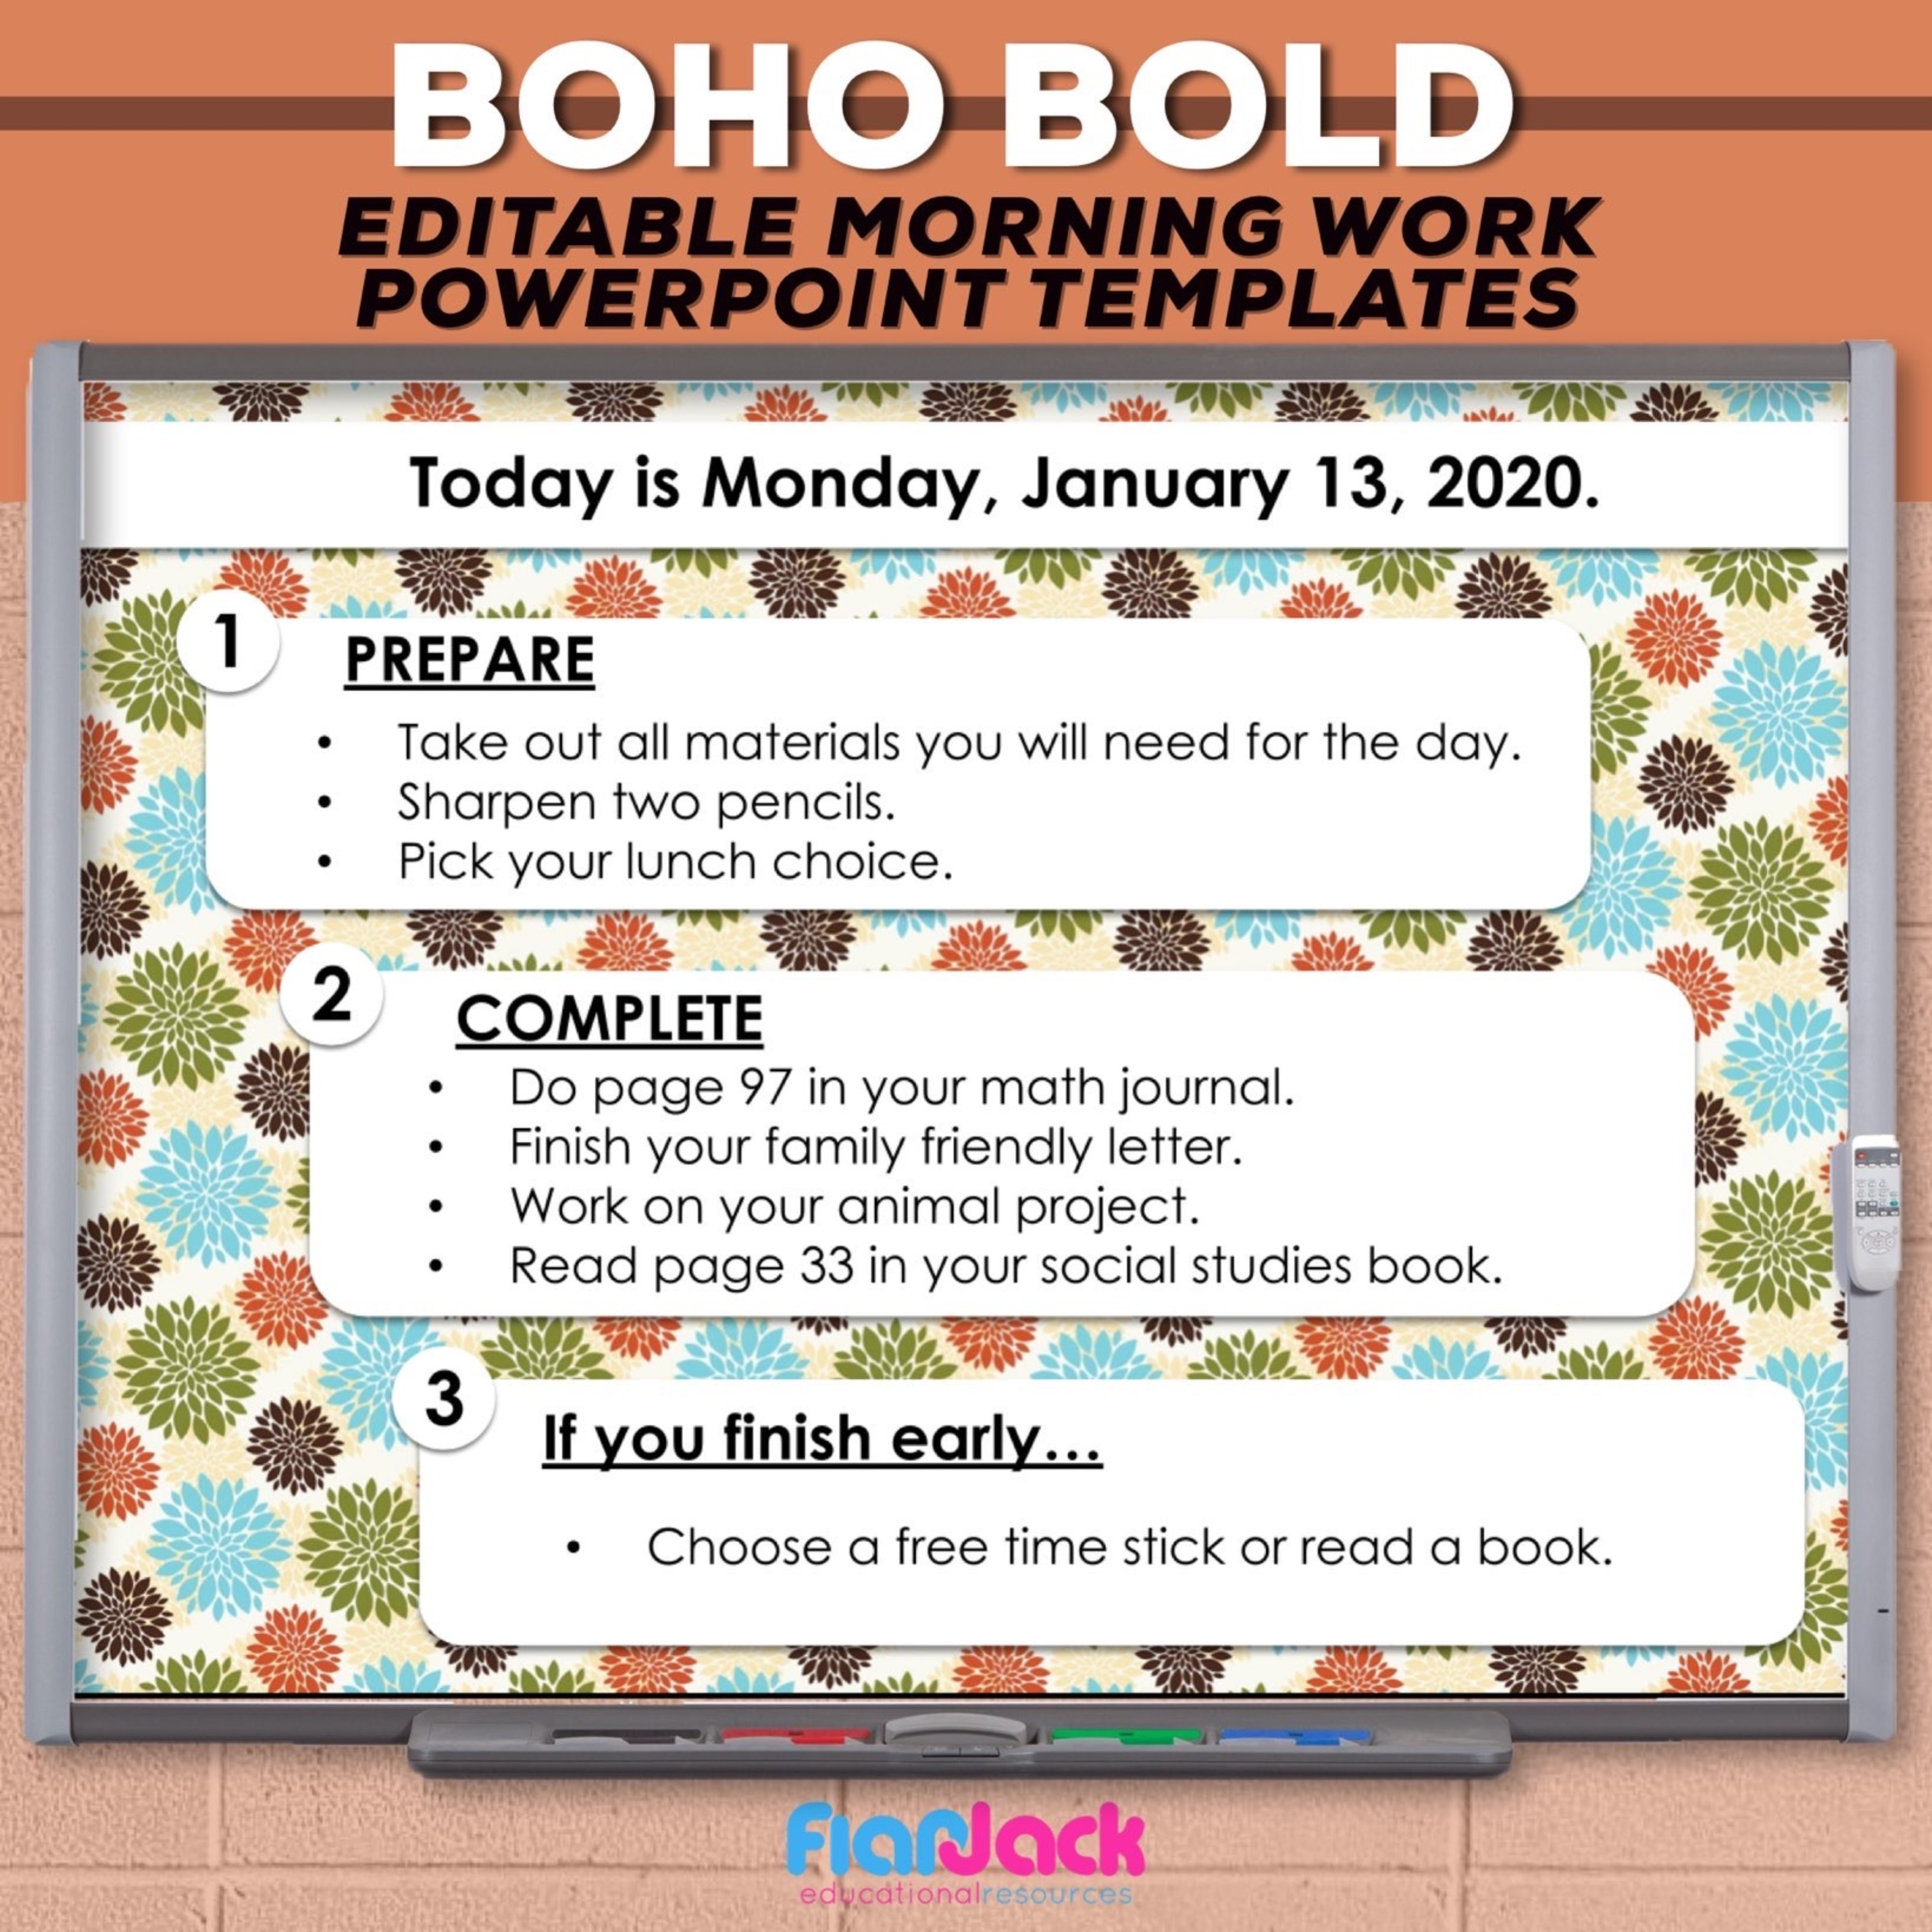 Boho Bold Editable PowerPoint Templates